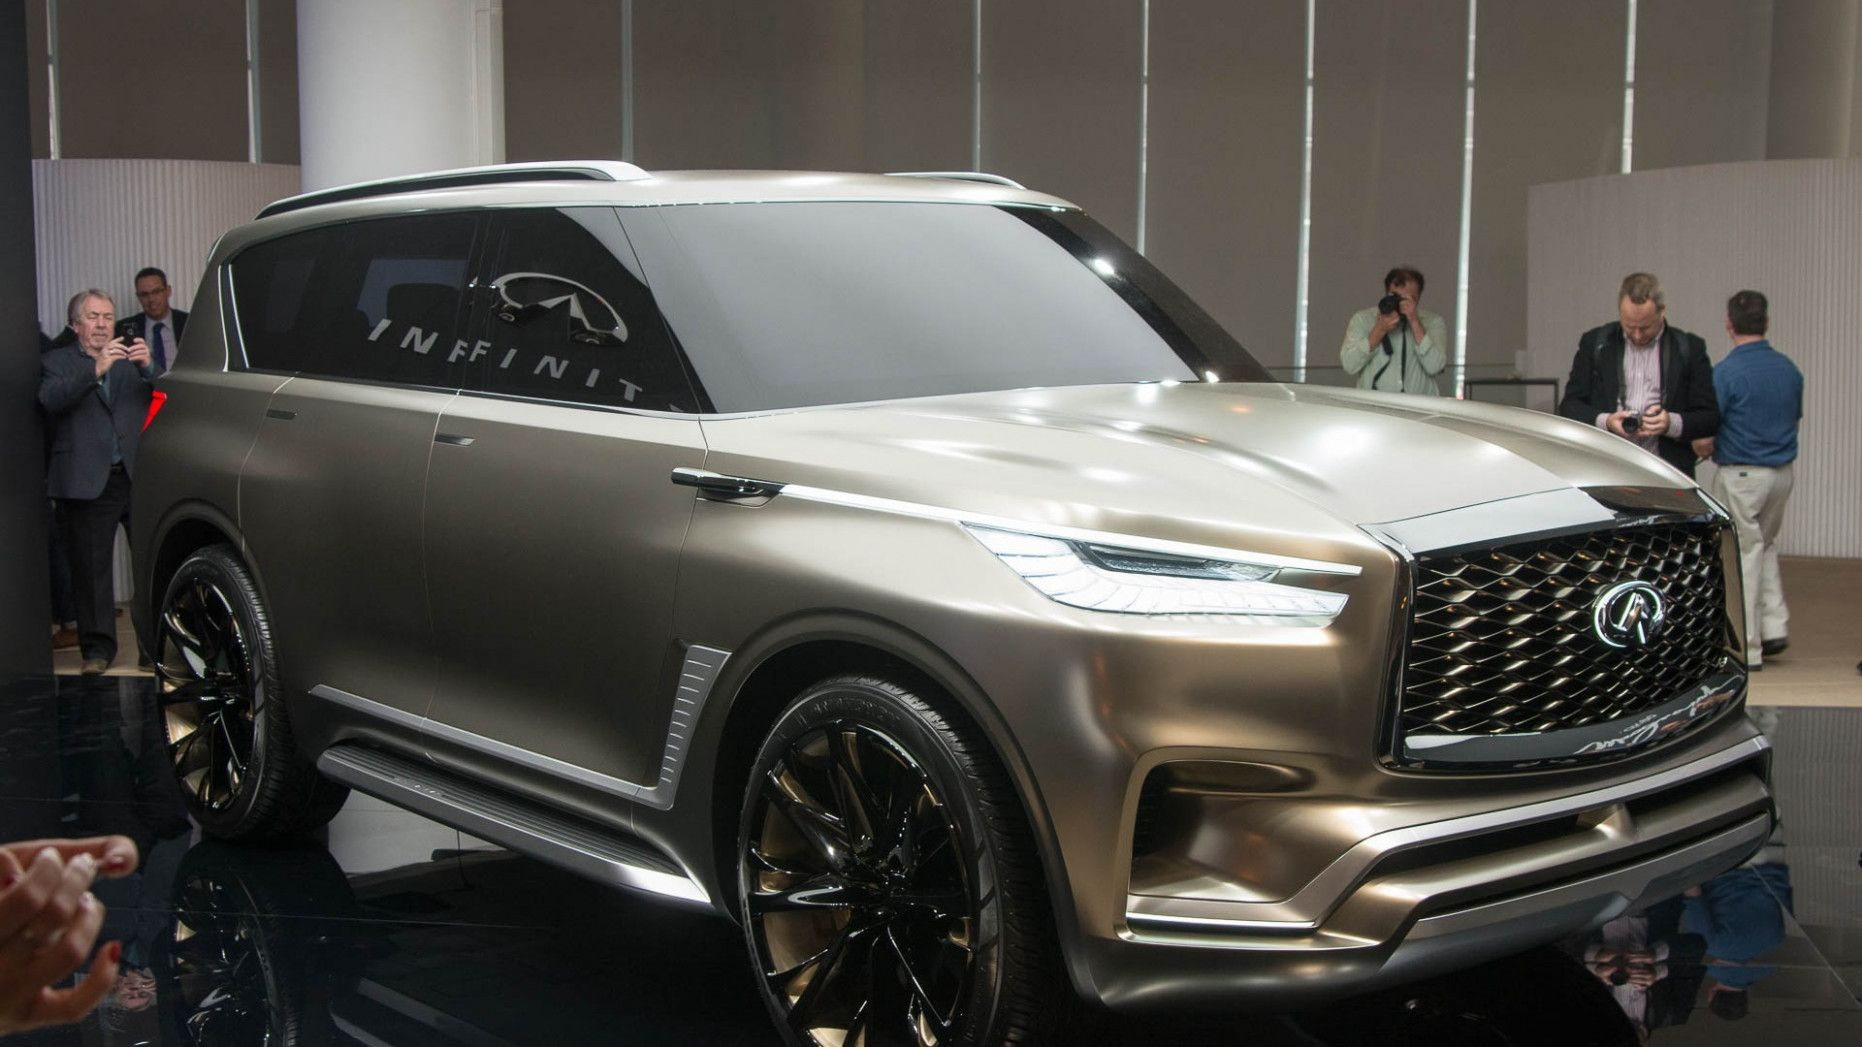 Five Advantages Of Infiniti Qx80 2020 And How You Can Make Full Use Of It Luxury Suv Concept Cars Fuel Economy